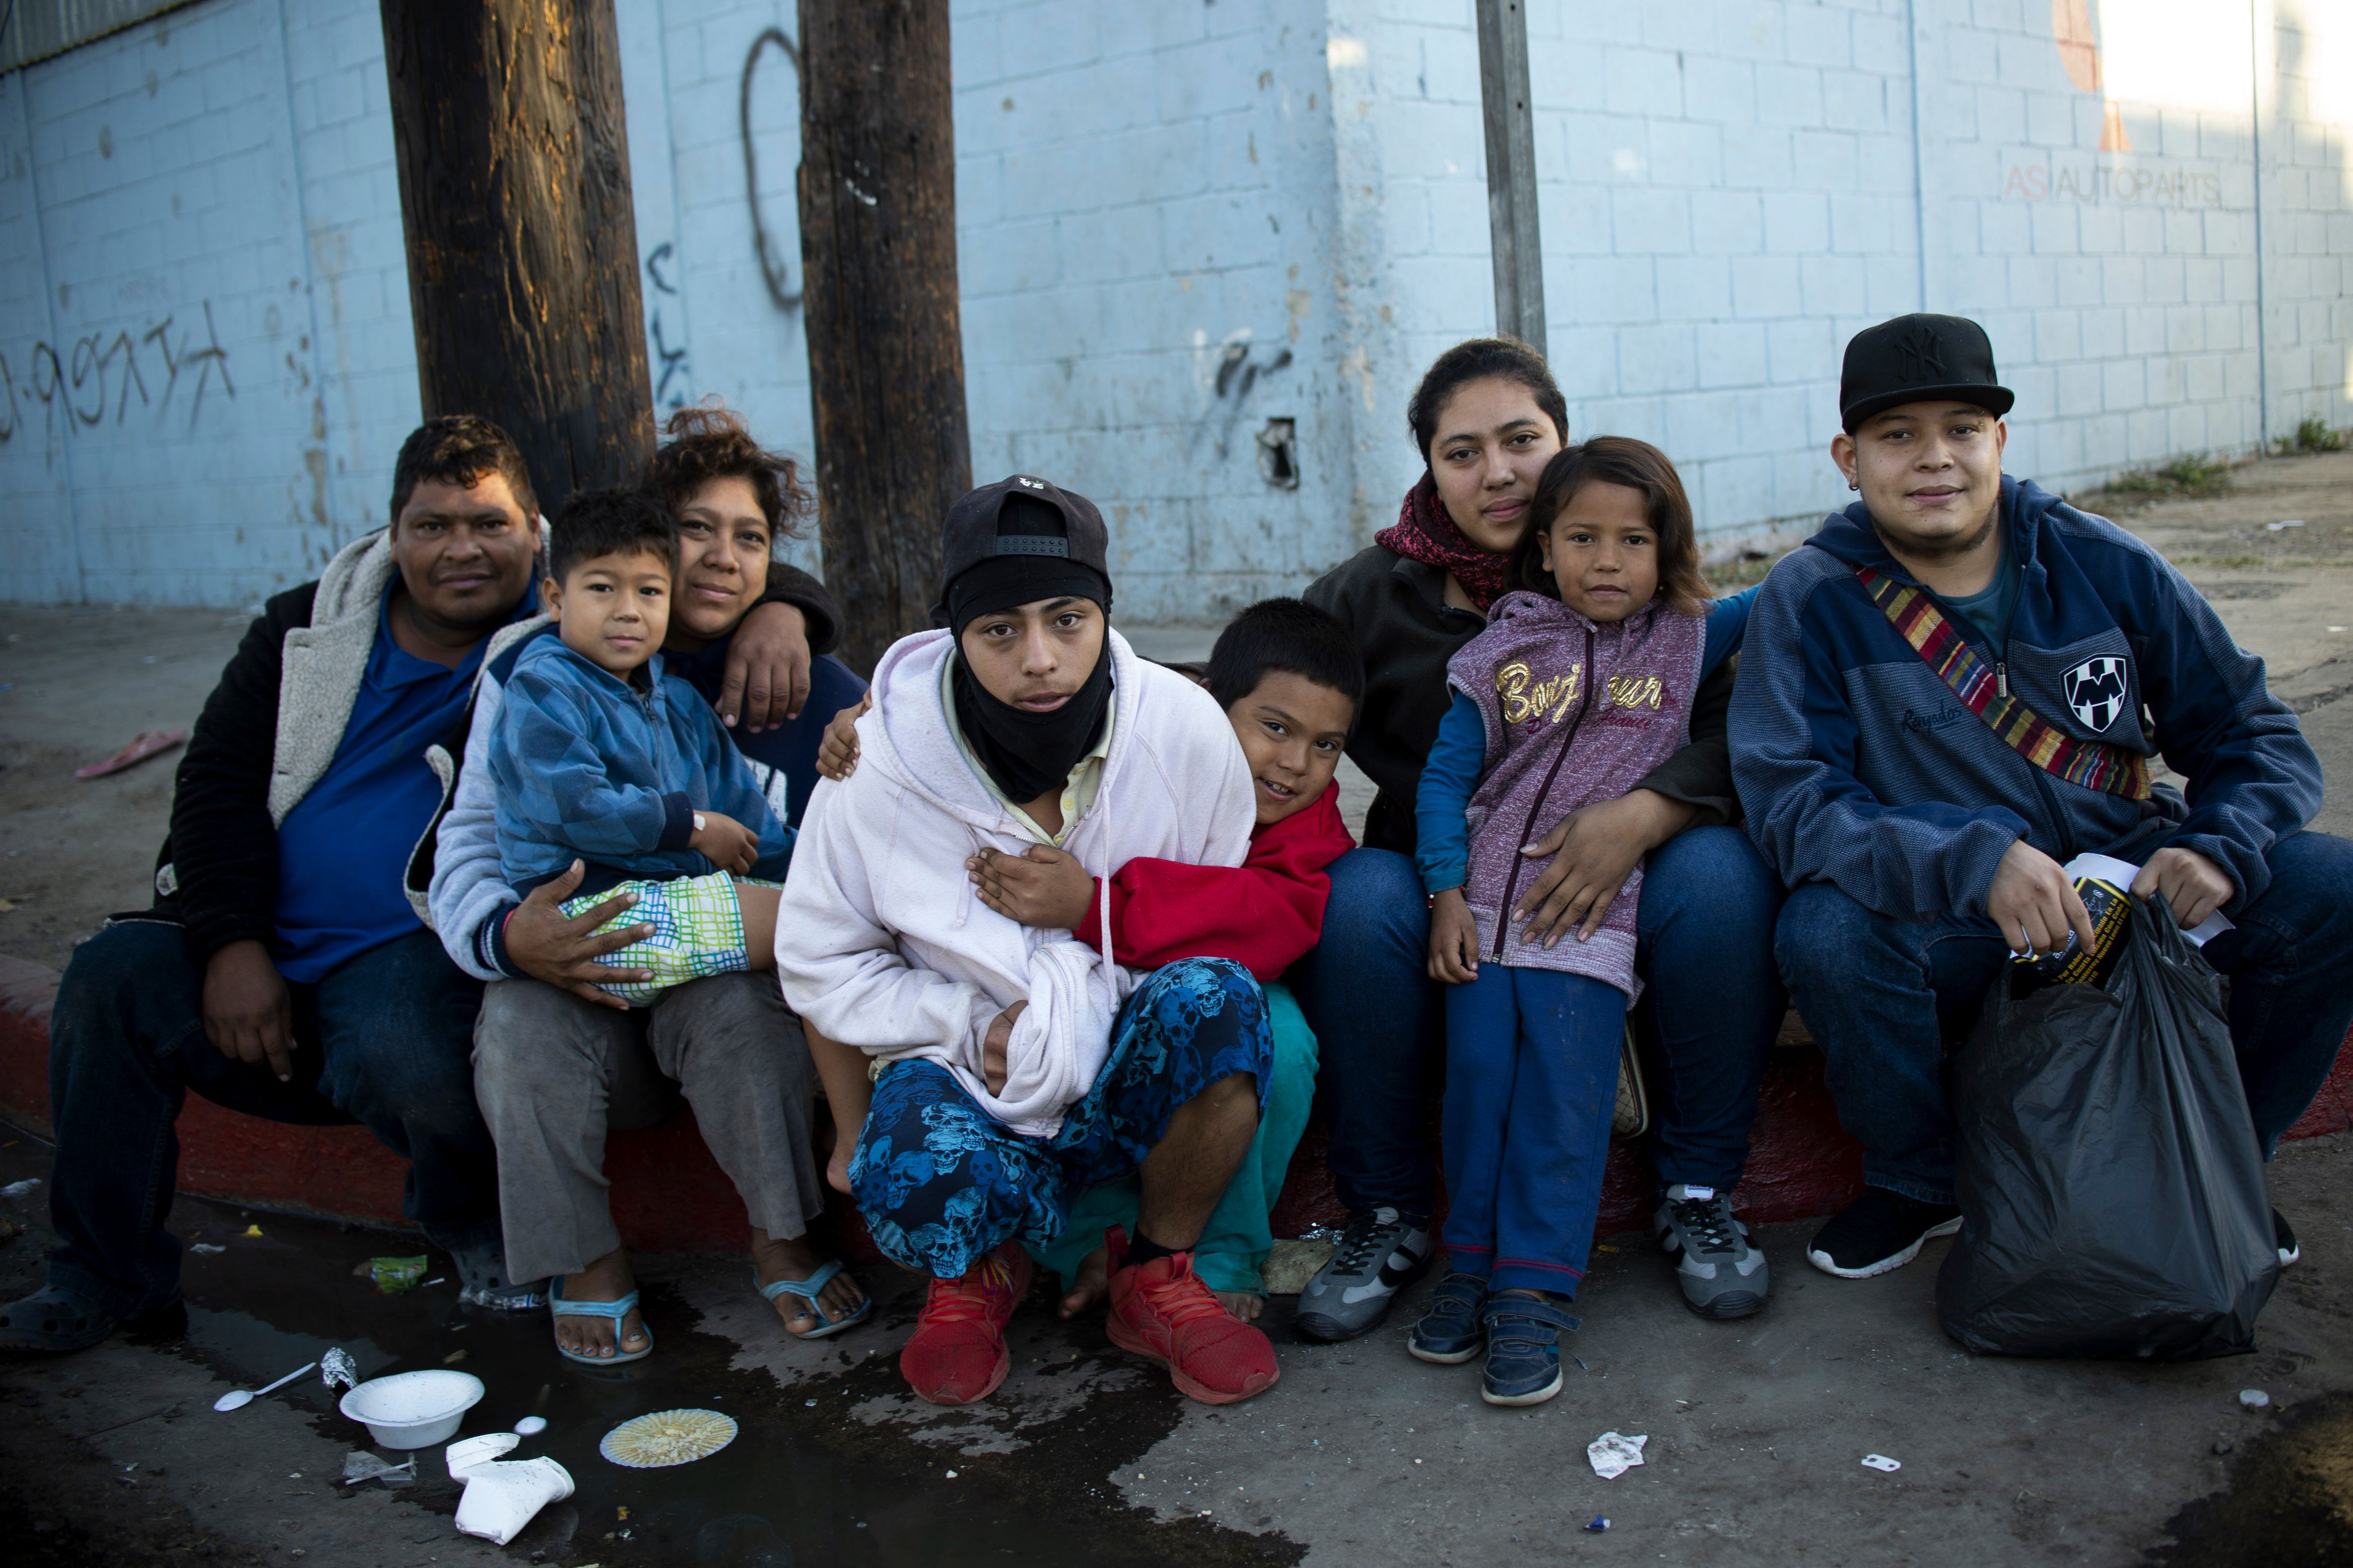 A family from Honduras pose for picture outside a temporary shelter in Tijuana, Baja California State, Mexico, near the US-Mexico border on November 26, 2018. (Photo by PEDRO PARDO / AFP)